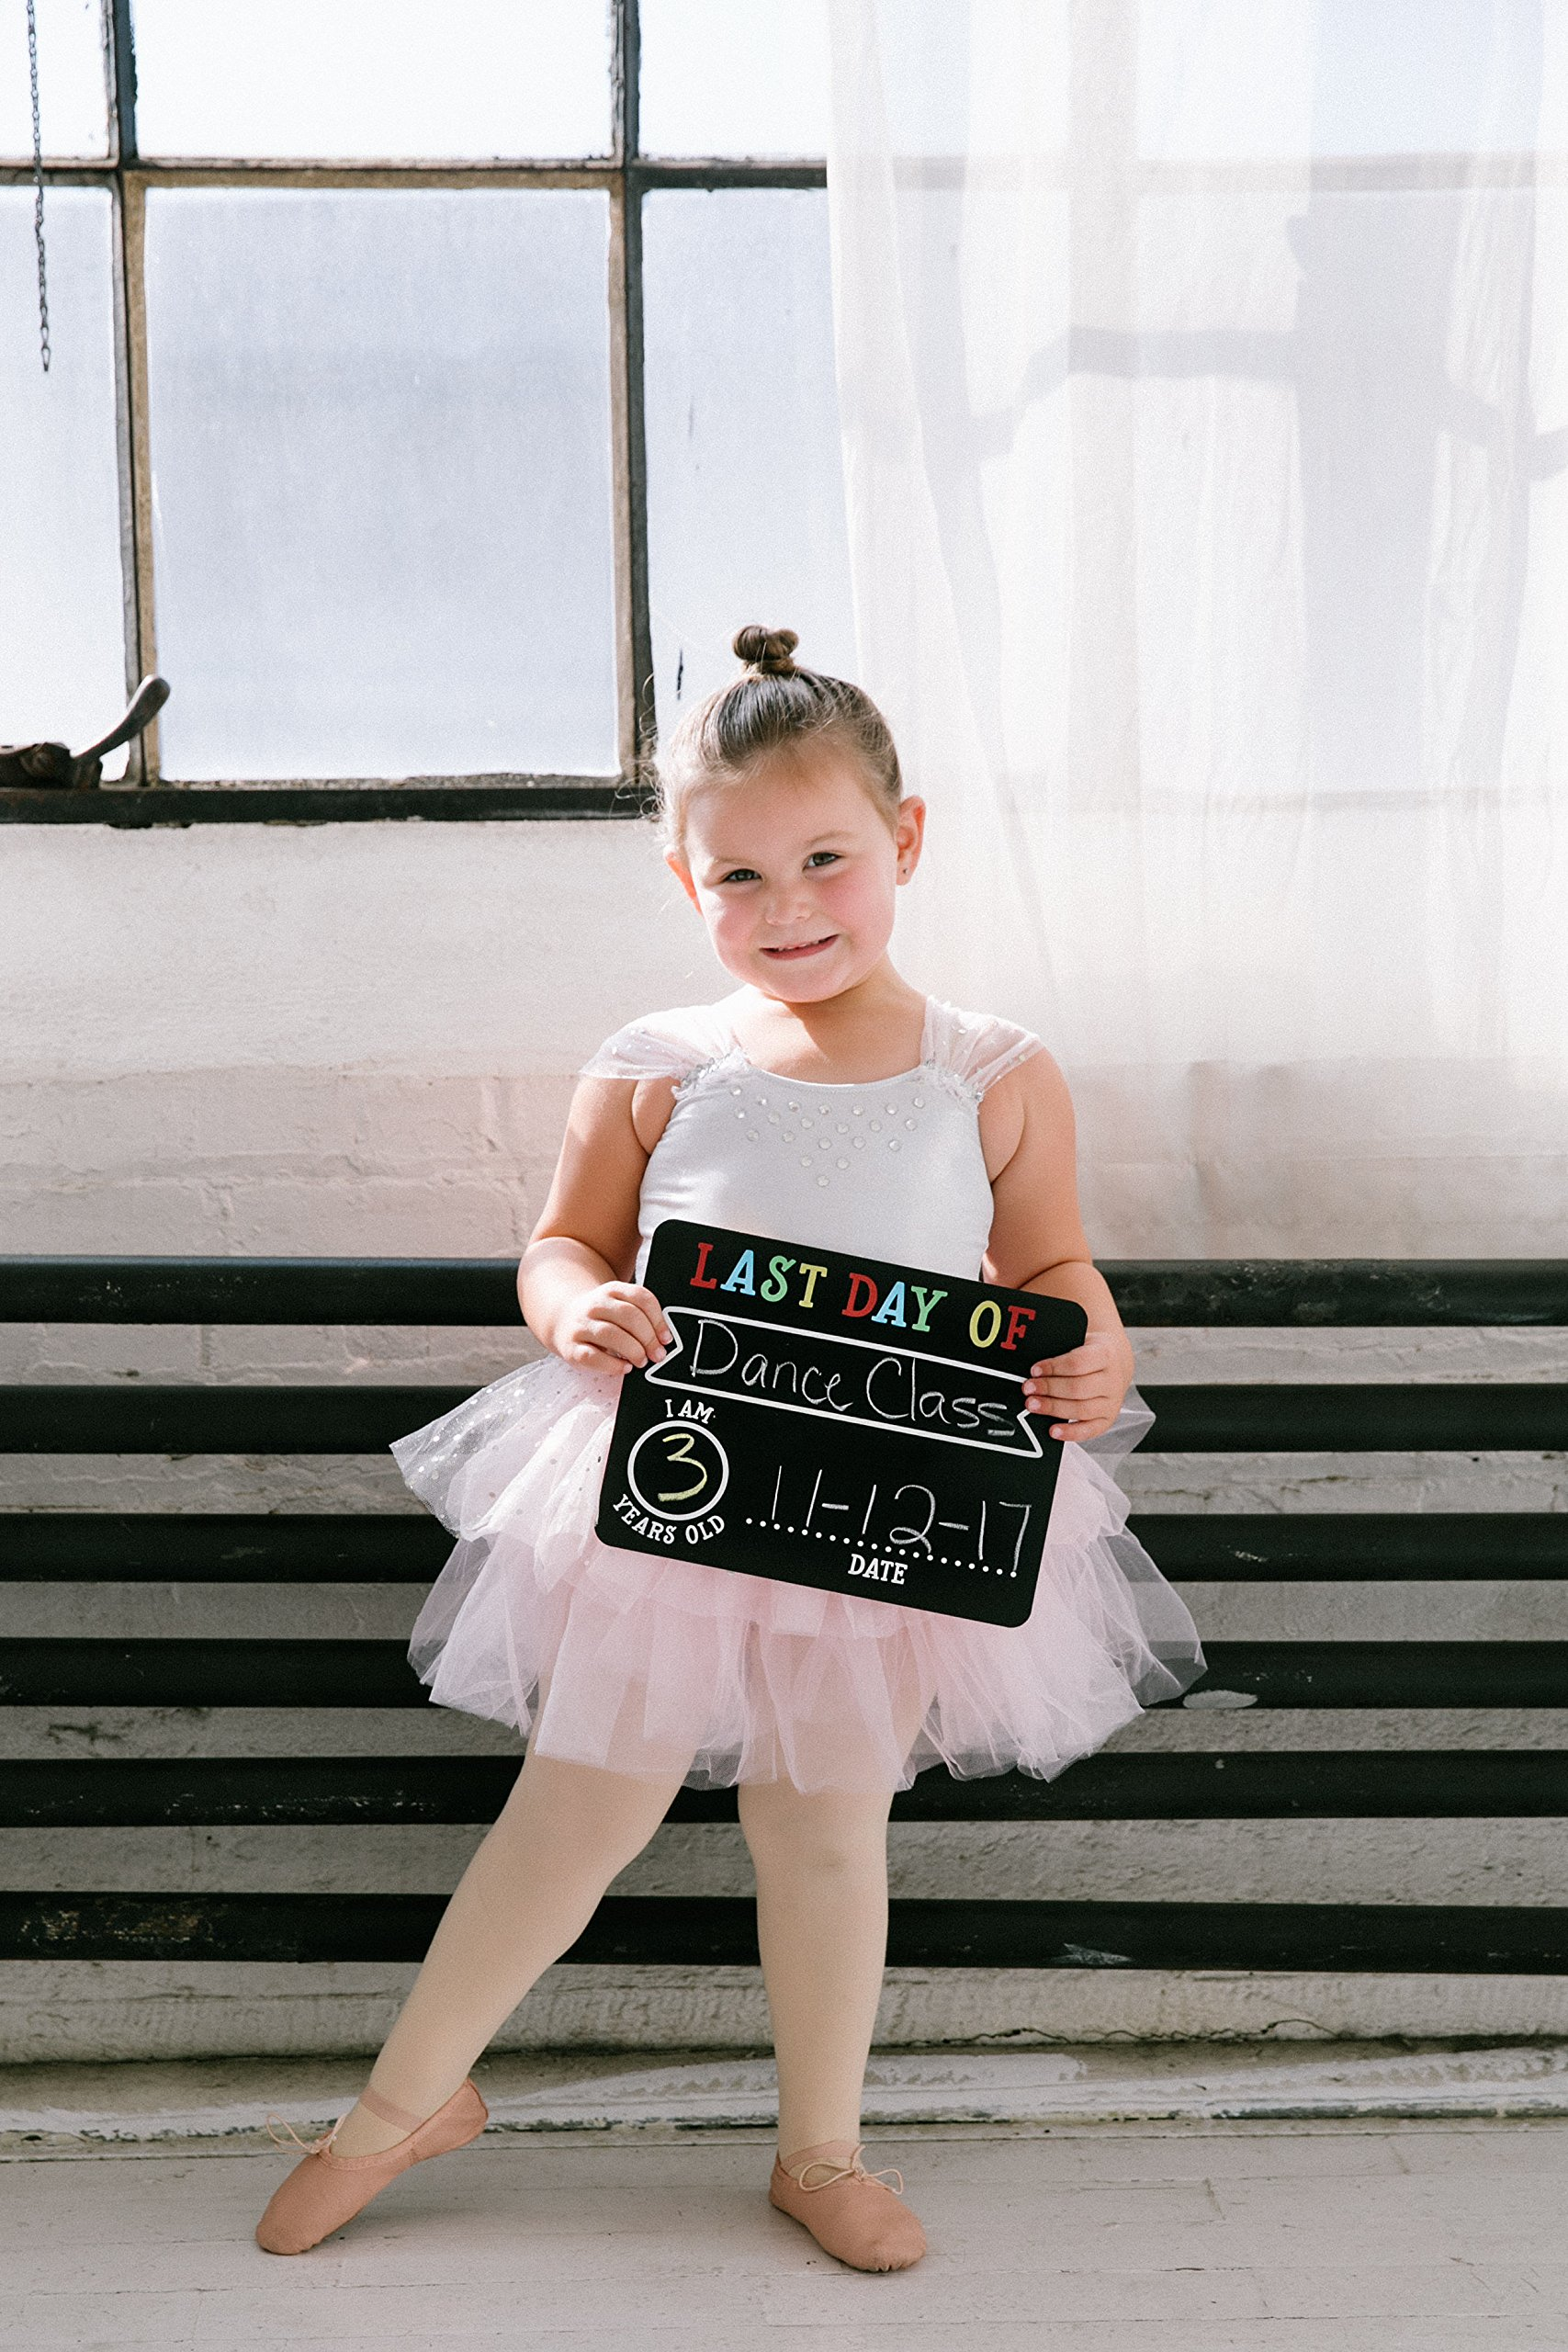 Pearhead First and Last Day of School Photo Sharing Chalkboard Signs; The Perfect Back to School Chalkboard Sign to Commemorate The First Day of School, Set of 2 by Pearhead (Image #8)